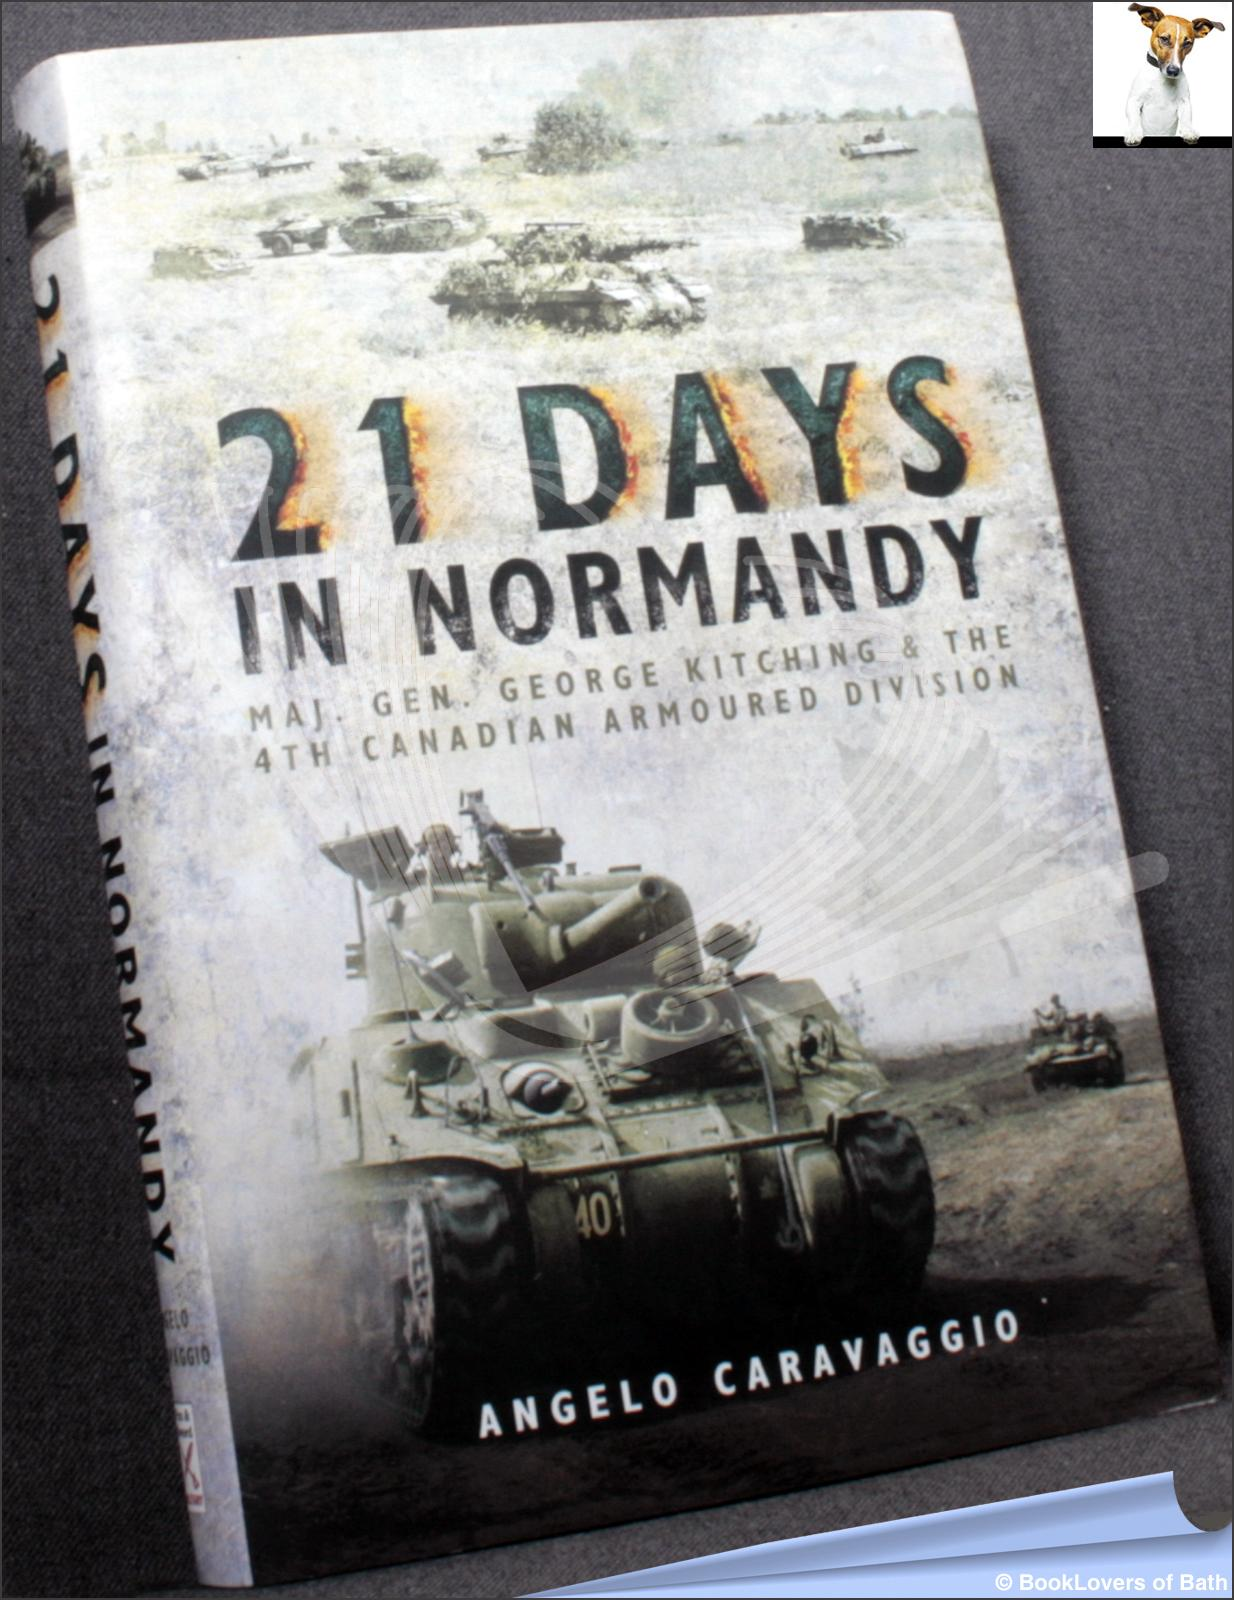 21 Days in Normandy: Maj. Gen. George Kitching and the 4th Canadian Armoured Division - Angelo Caravaggio